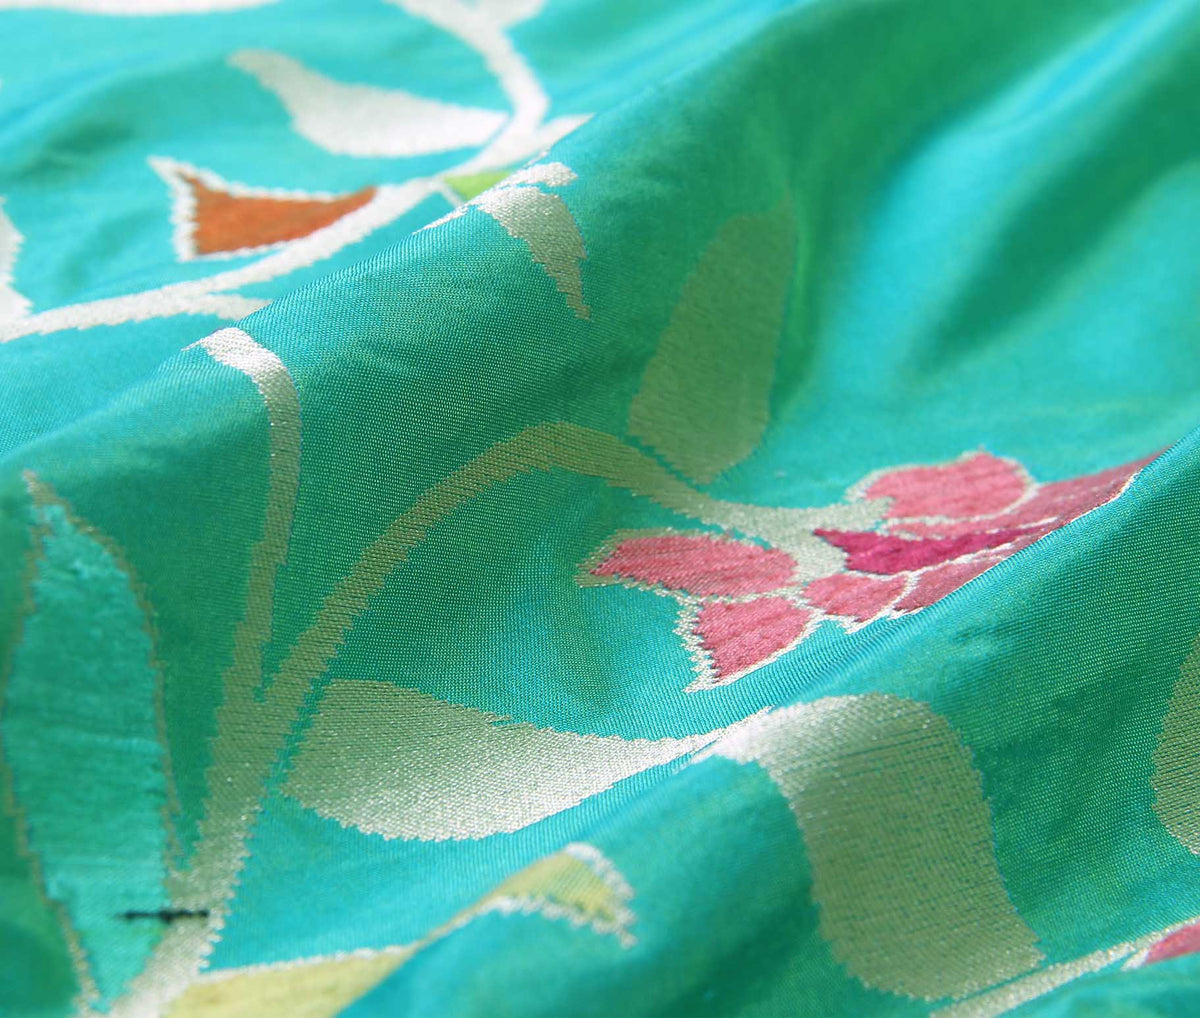 Sea Green Katan Silk Handwoven Banarasi saree with meenedar floral jaal border (3) closeup